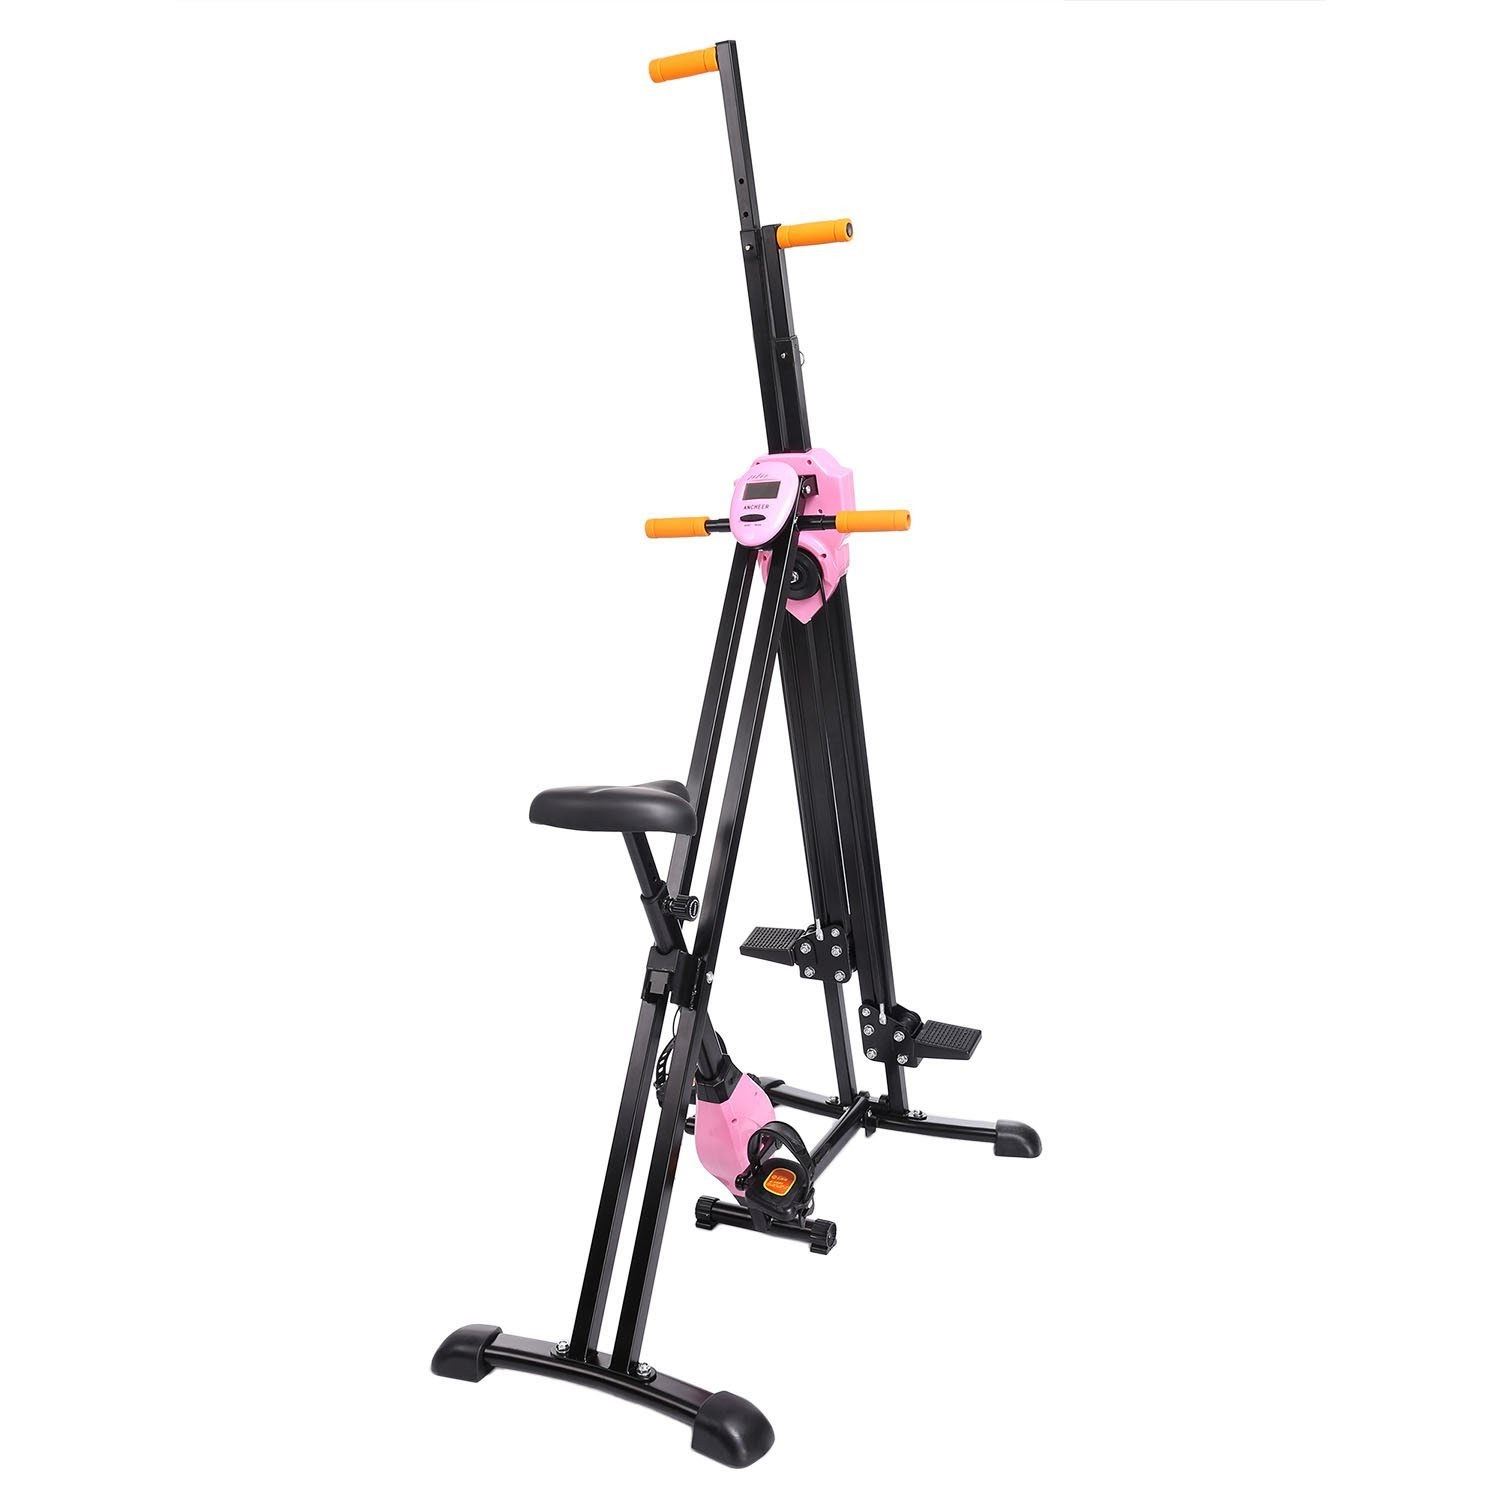 Health and Fitness Den: Ancheer Vertical Climber